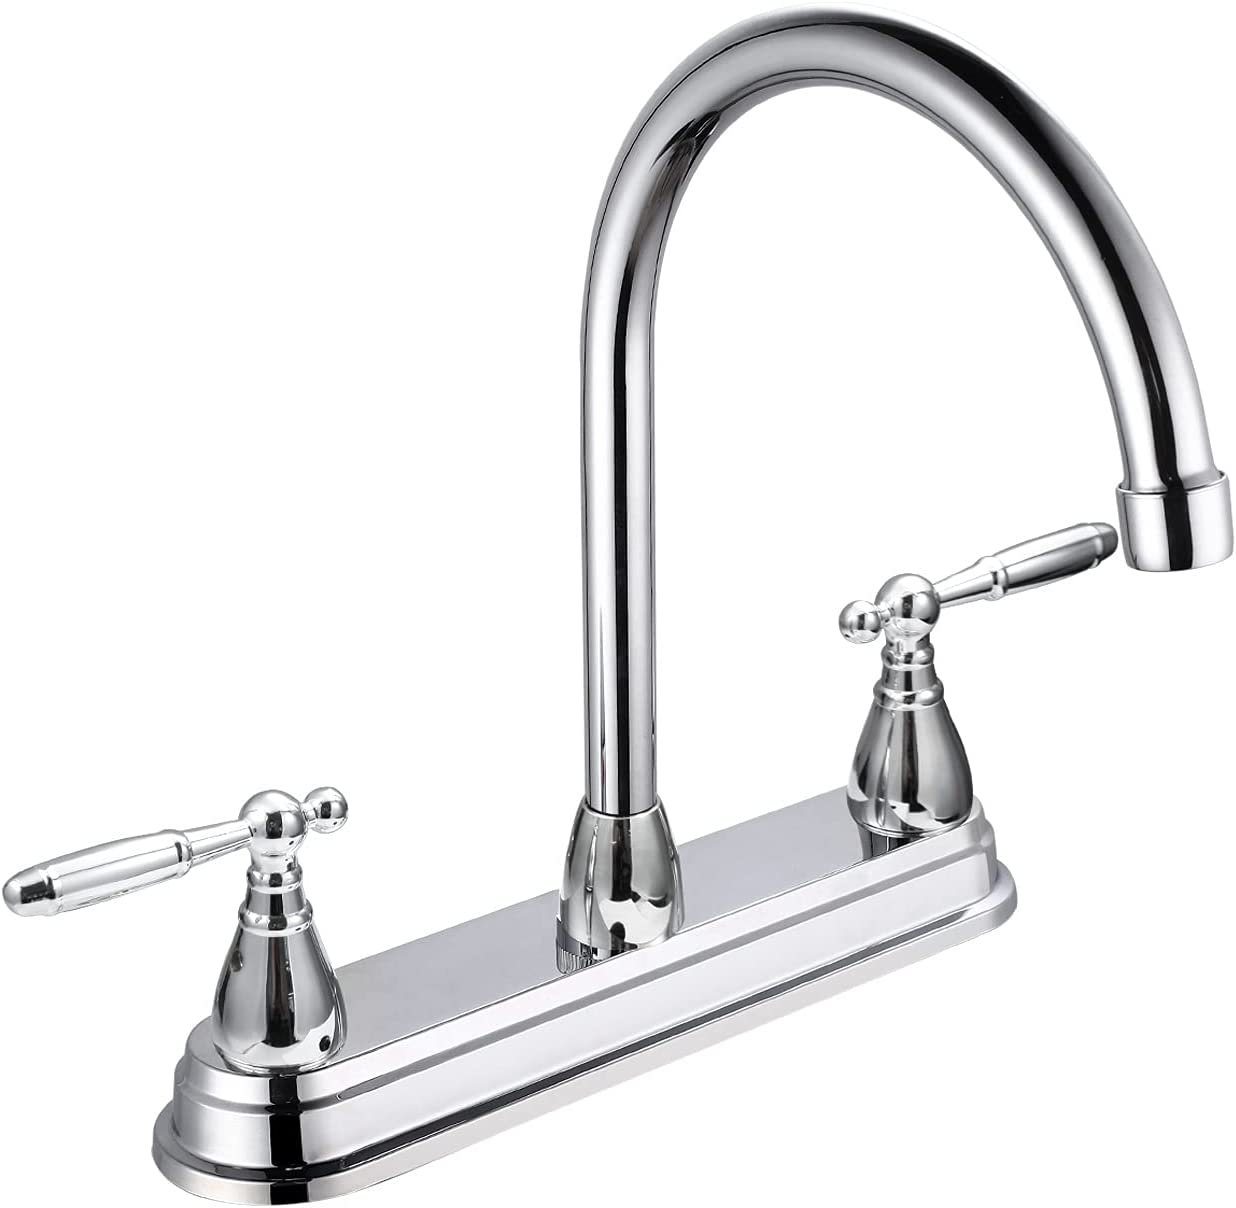 SOLVEX 2 Handle Kitchen Sink Faucet, High Arc 360 Swivel Stainless Steel Pipe 3 Hole Kitchen Faucet, Commercial Modern Chrome Kitchen Sink Faucet, US-SP-80077